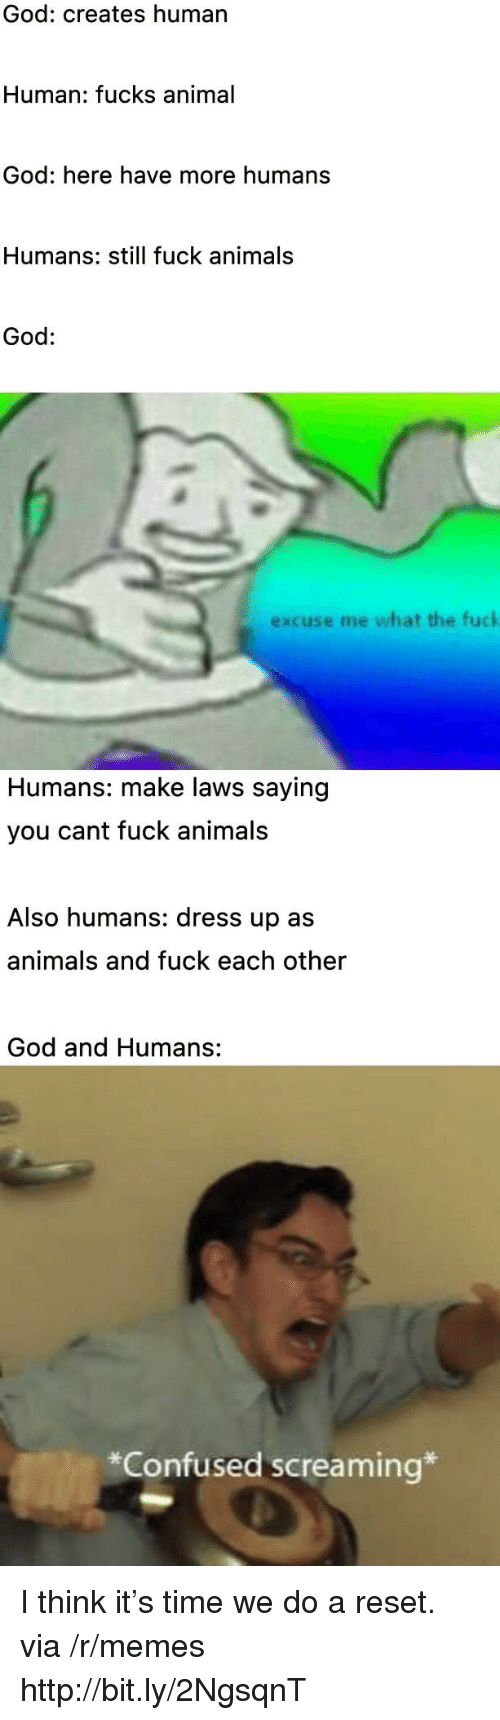 Animals, Confused, and God: God: creates human  Human: fucks animal  God: here have more humans  Humans: still fuck animals  God:  excuse me what the fuck  Humans: make laws saying  you cant fuck animals  Also humans: dress up as  animals and fuck each other  God and Humans:  *Confused screaming* I think it's time we do a reset. via /r/memes http://bit.ly/2NgsqnT